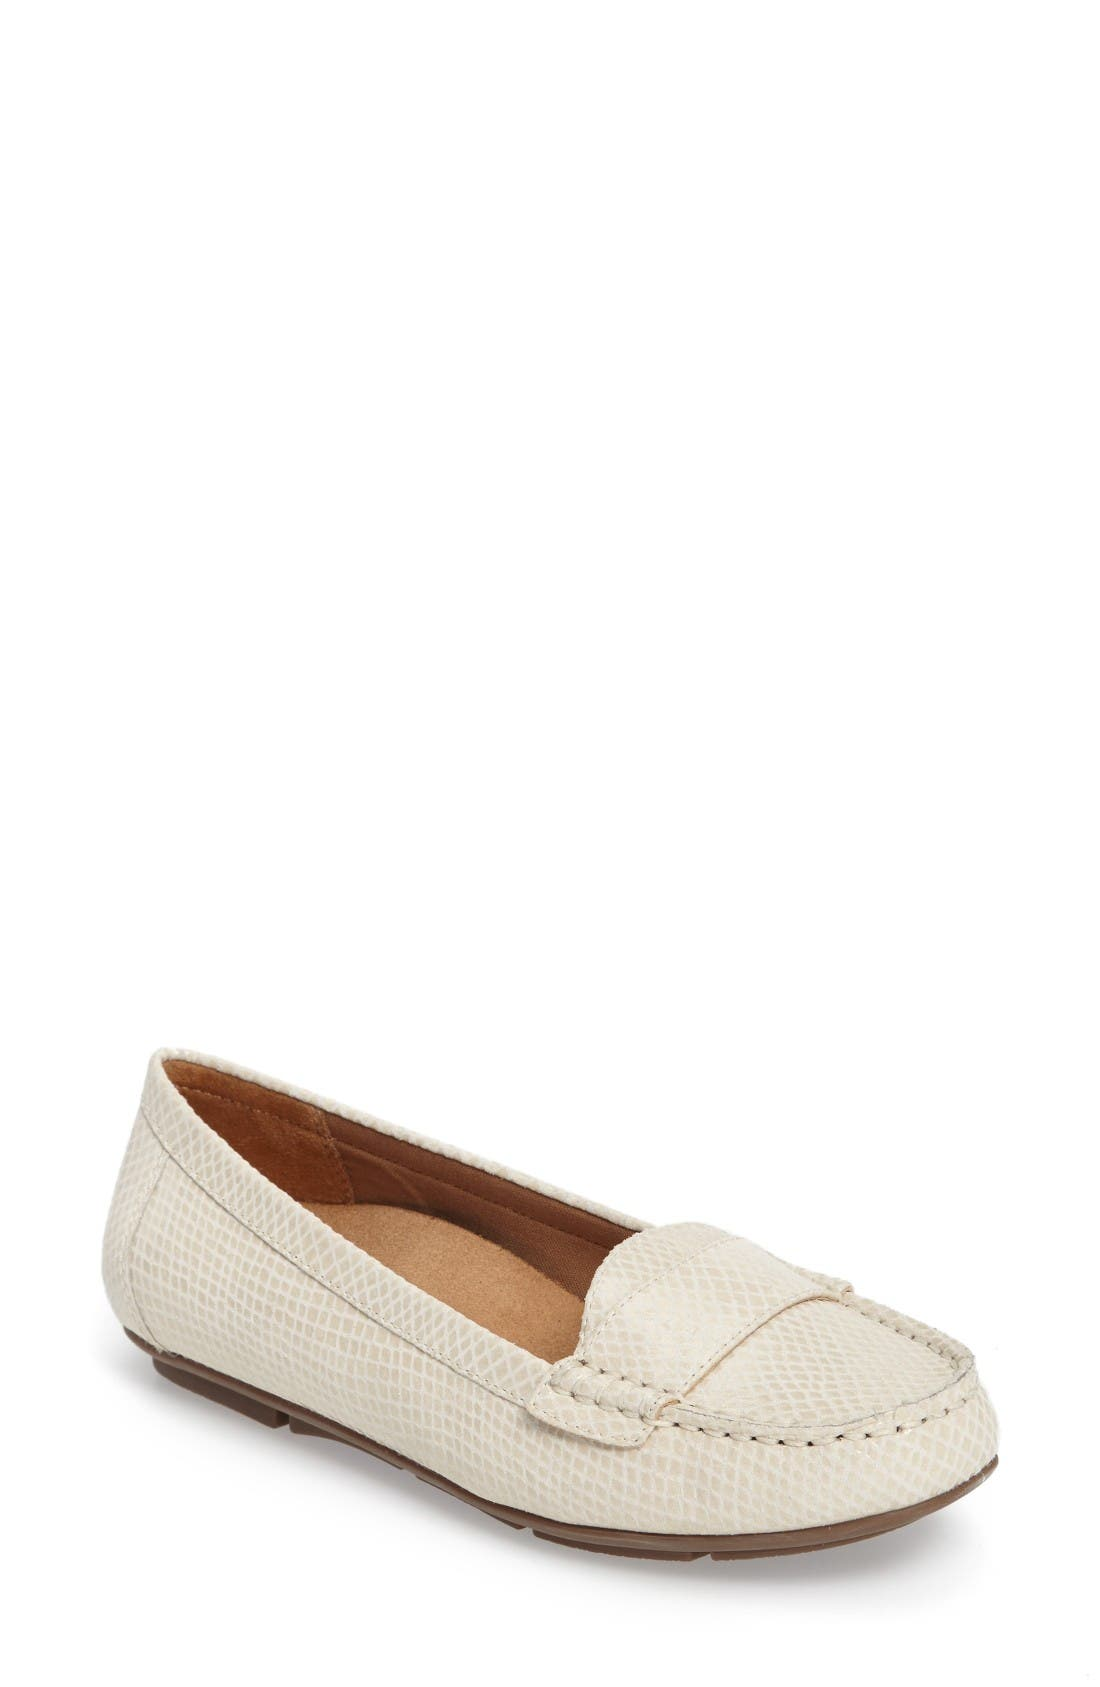 'Larrun' Animal Print Loafer Flat,                         Main,                         color, Ivory Snake Leather